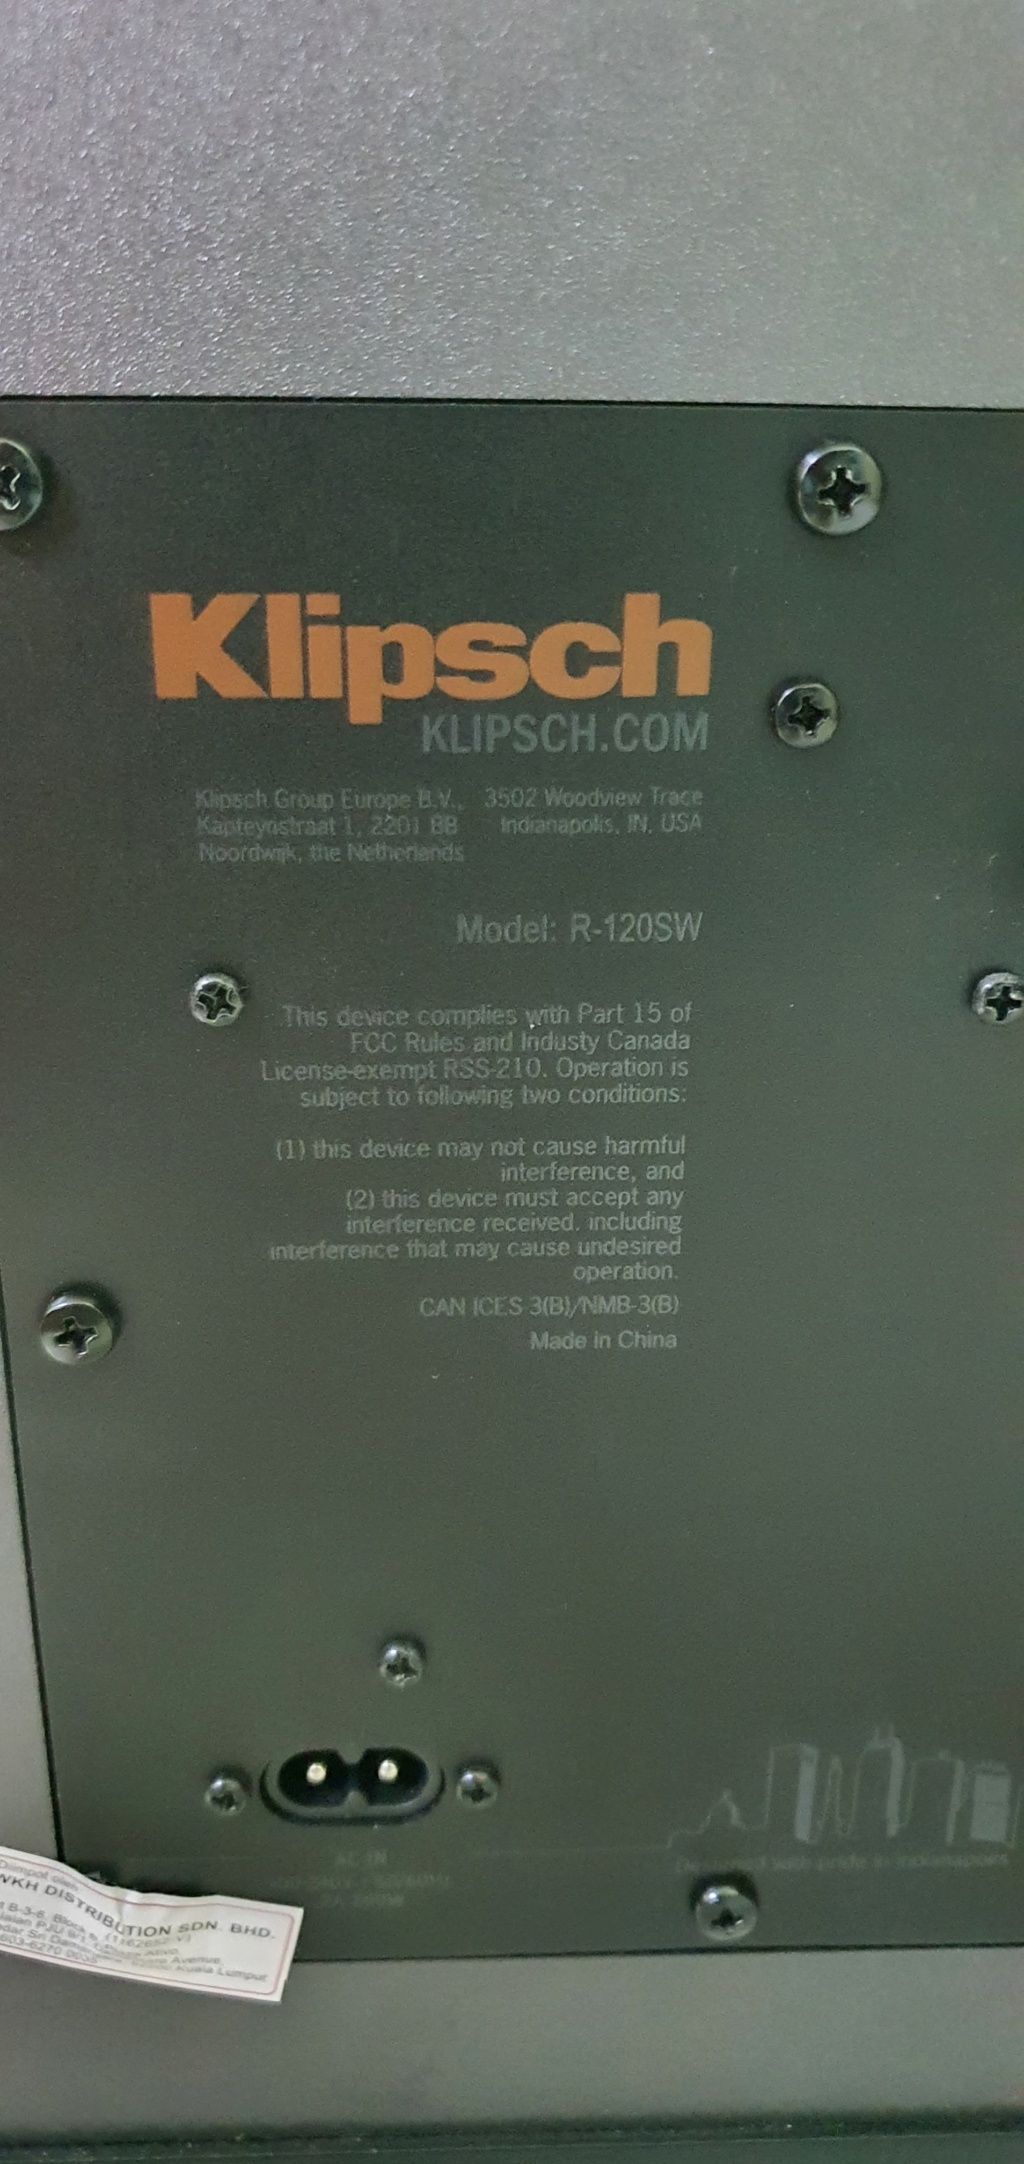 Klipsch R-120SW Subwoofer (under warrenrty) 20210414